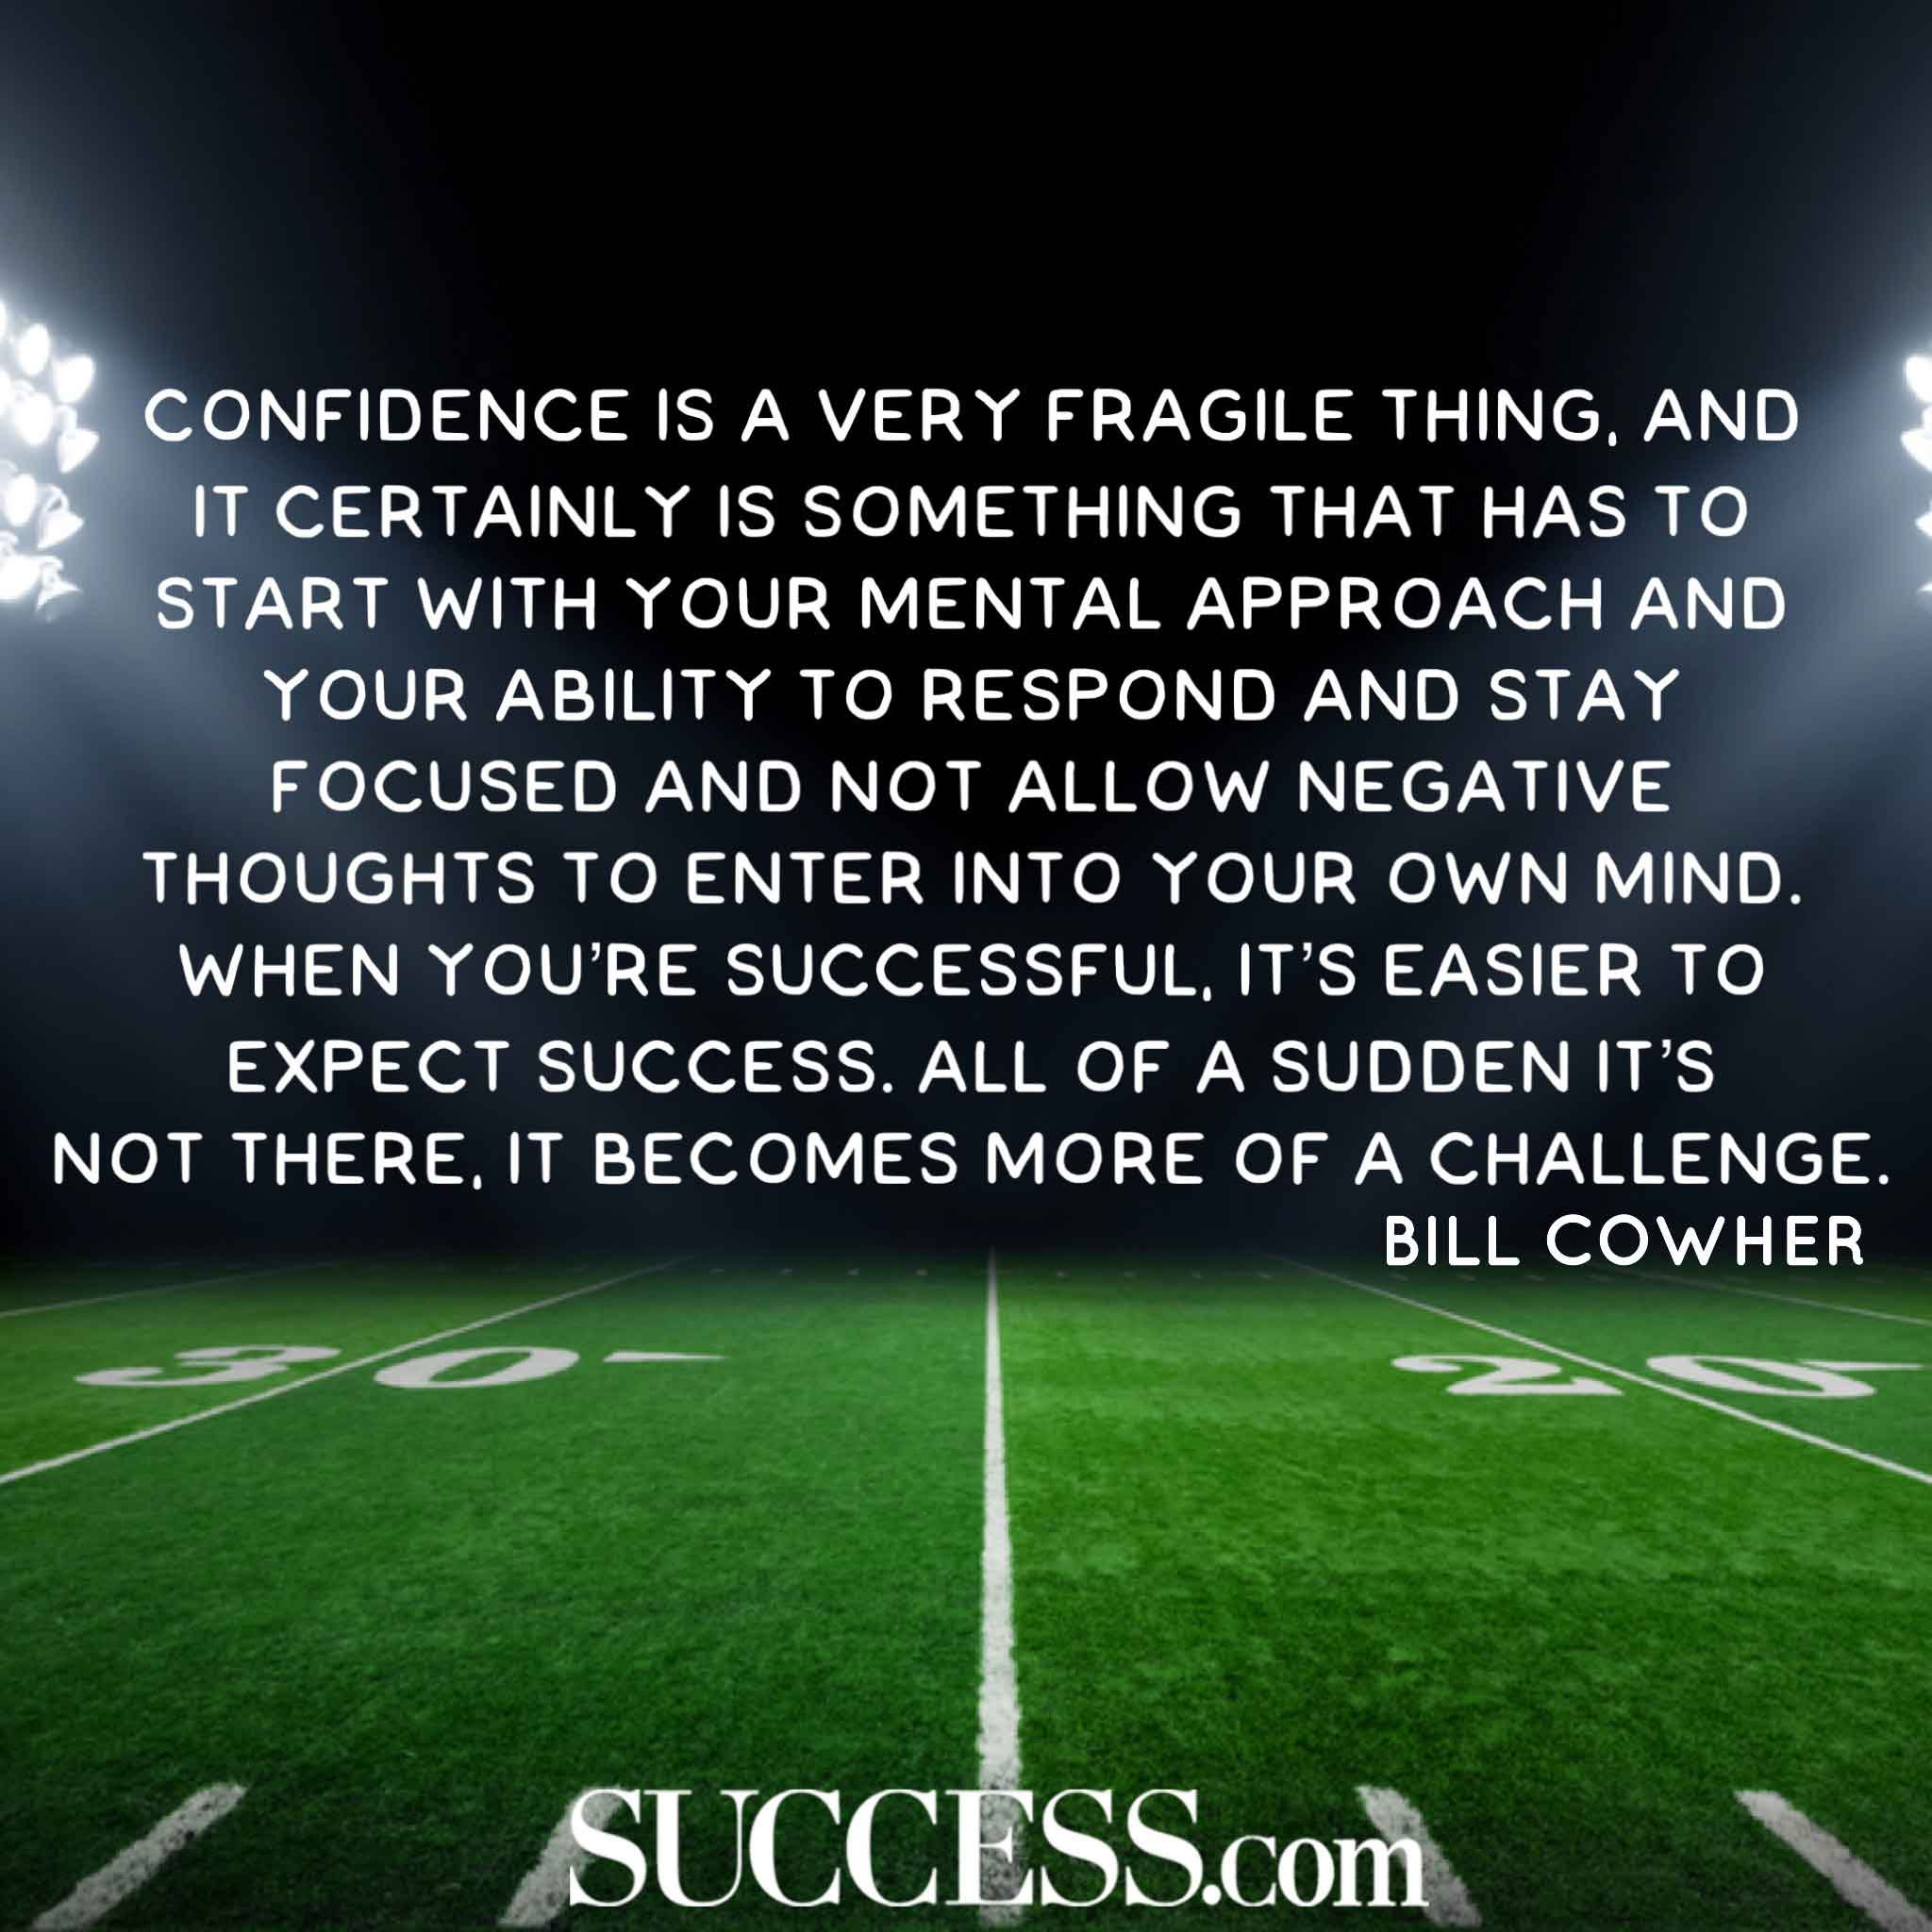 Inspiration Soccer Quotes: 20 Motivational Quotes By The Most Inspiring NFL Coaches